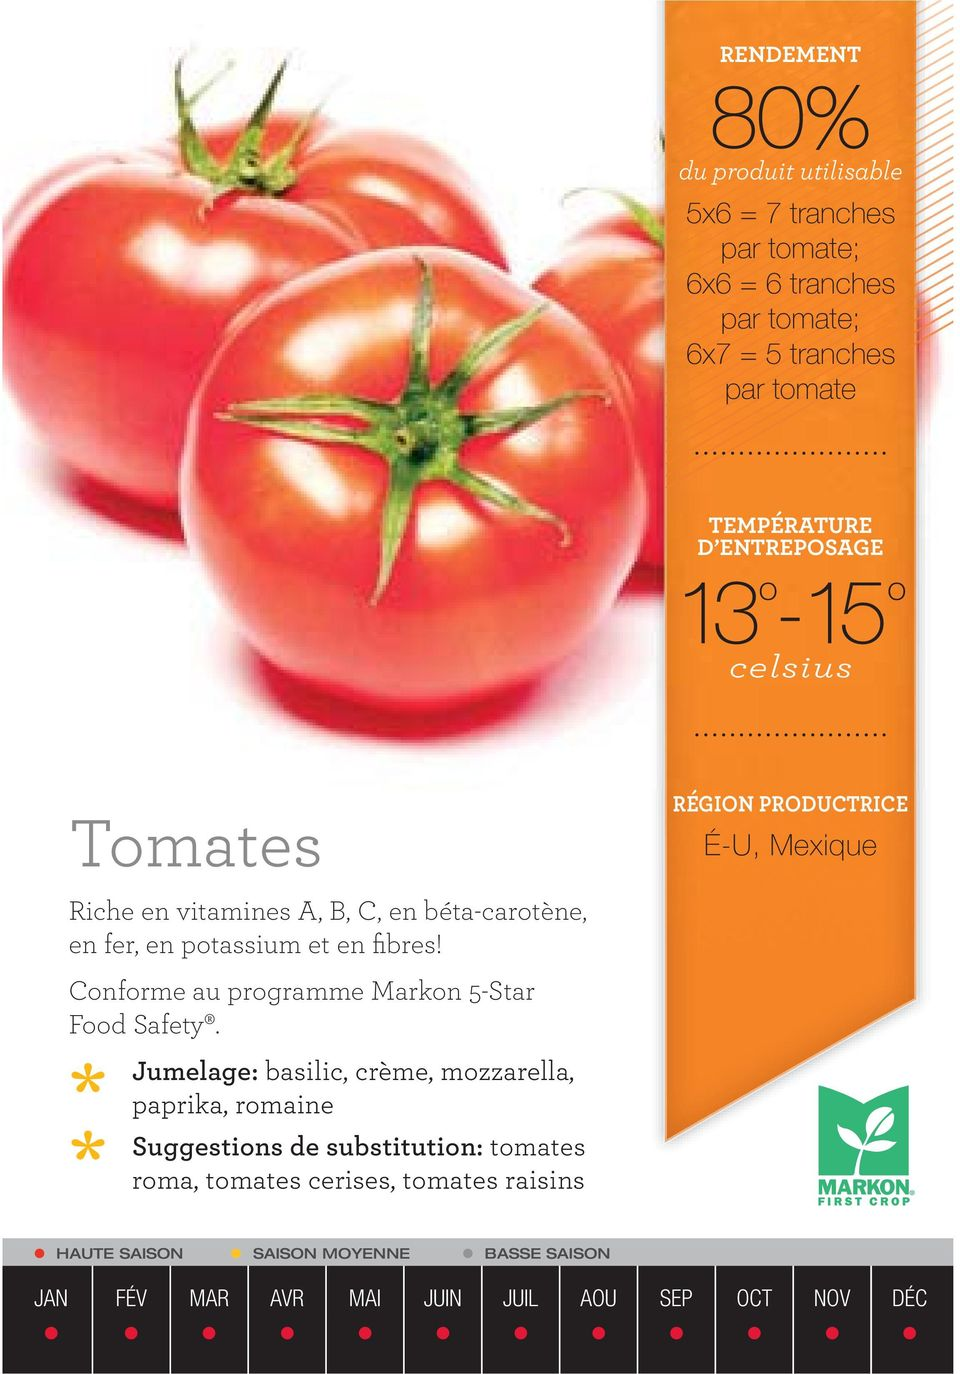 et en fibres! Conforme au programme Markon 5-Star Food Safety.